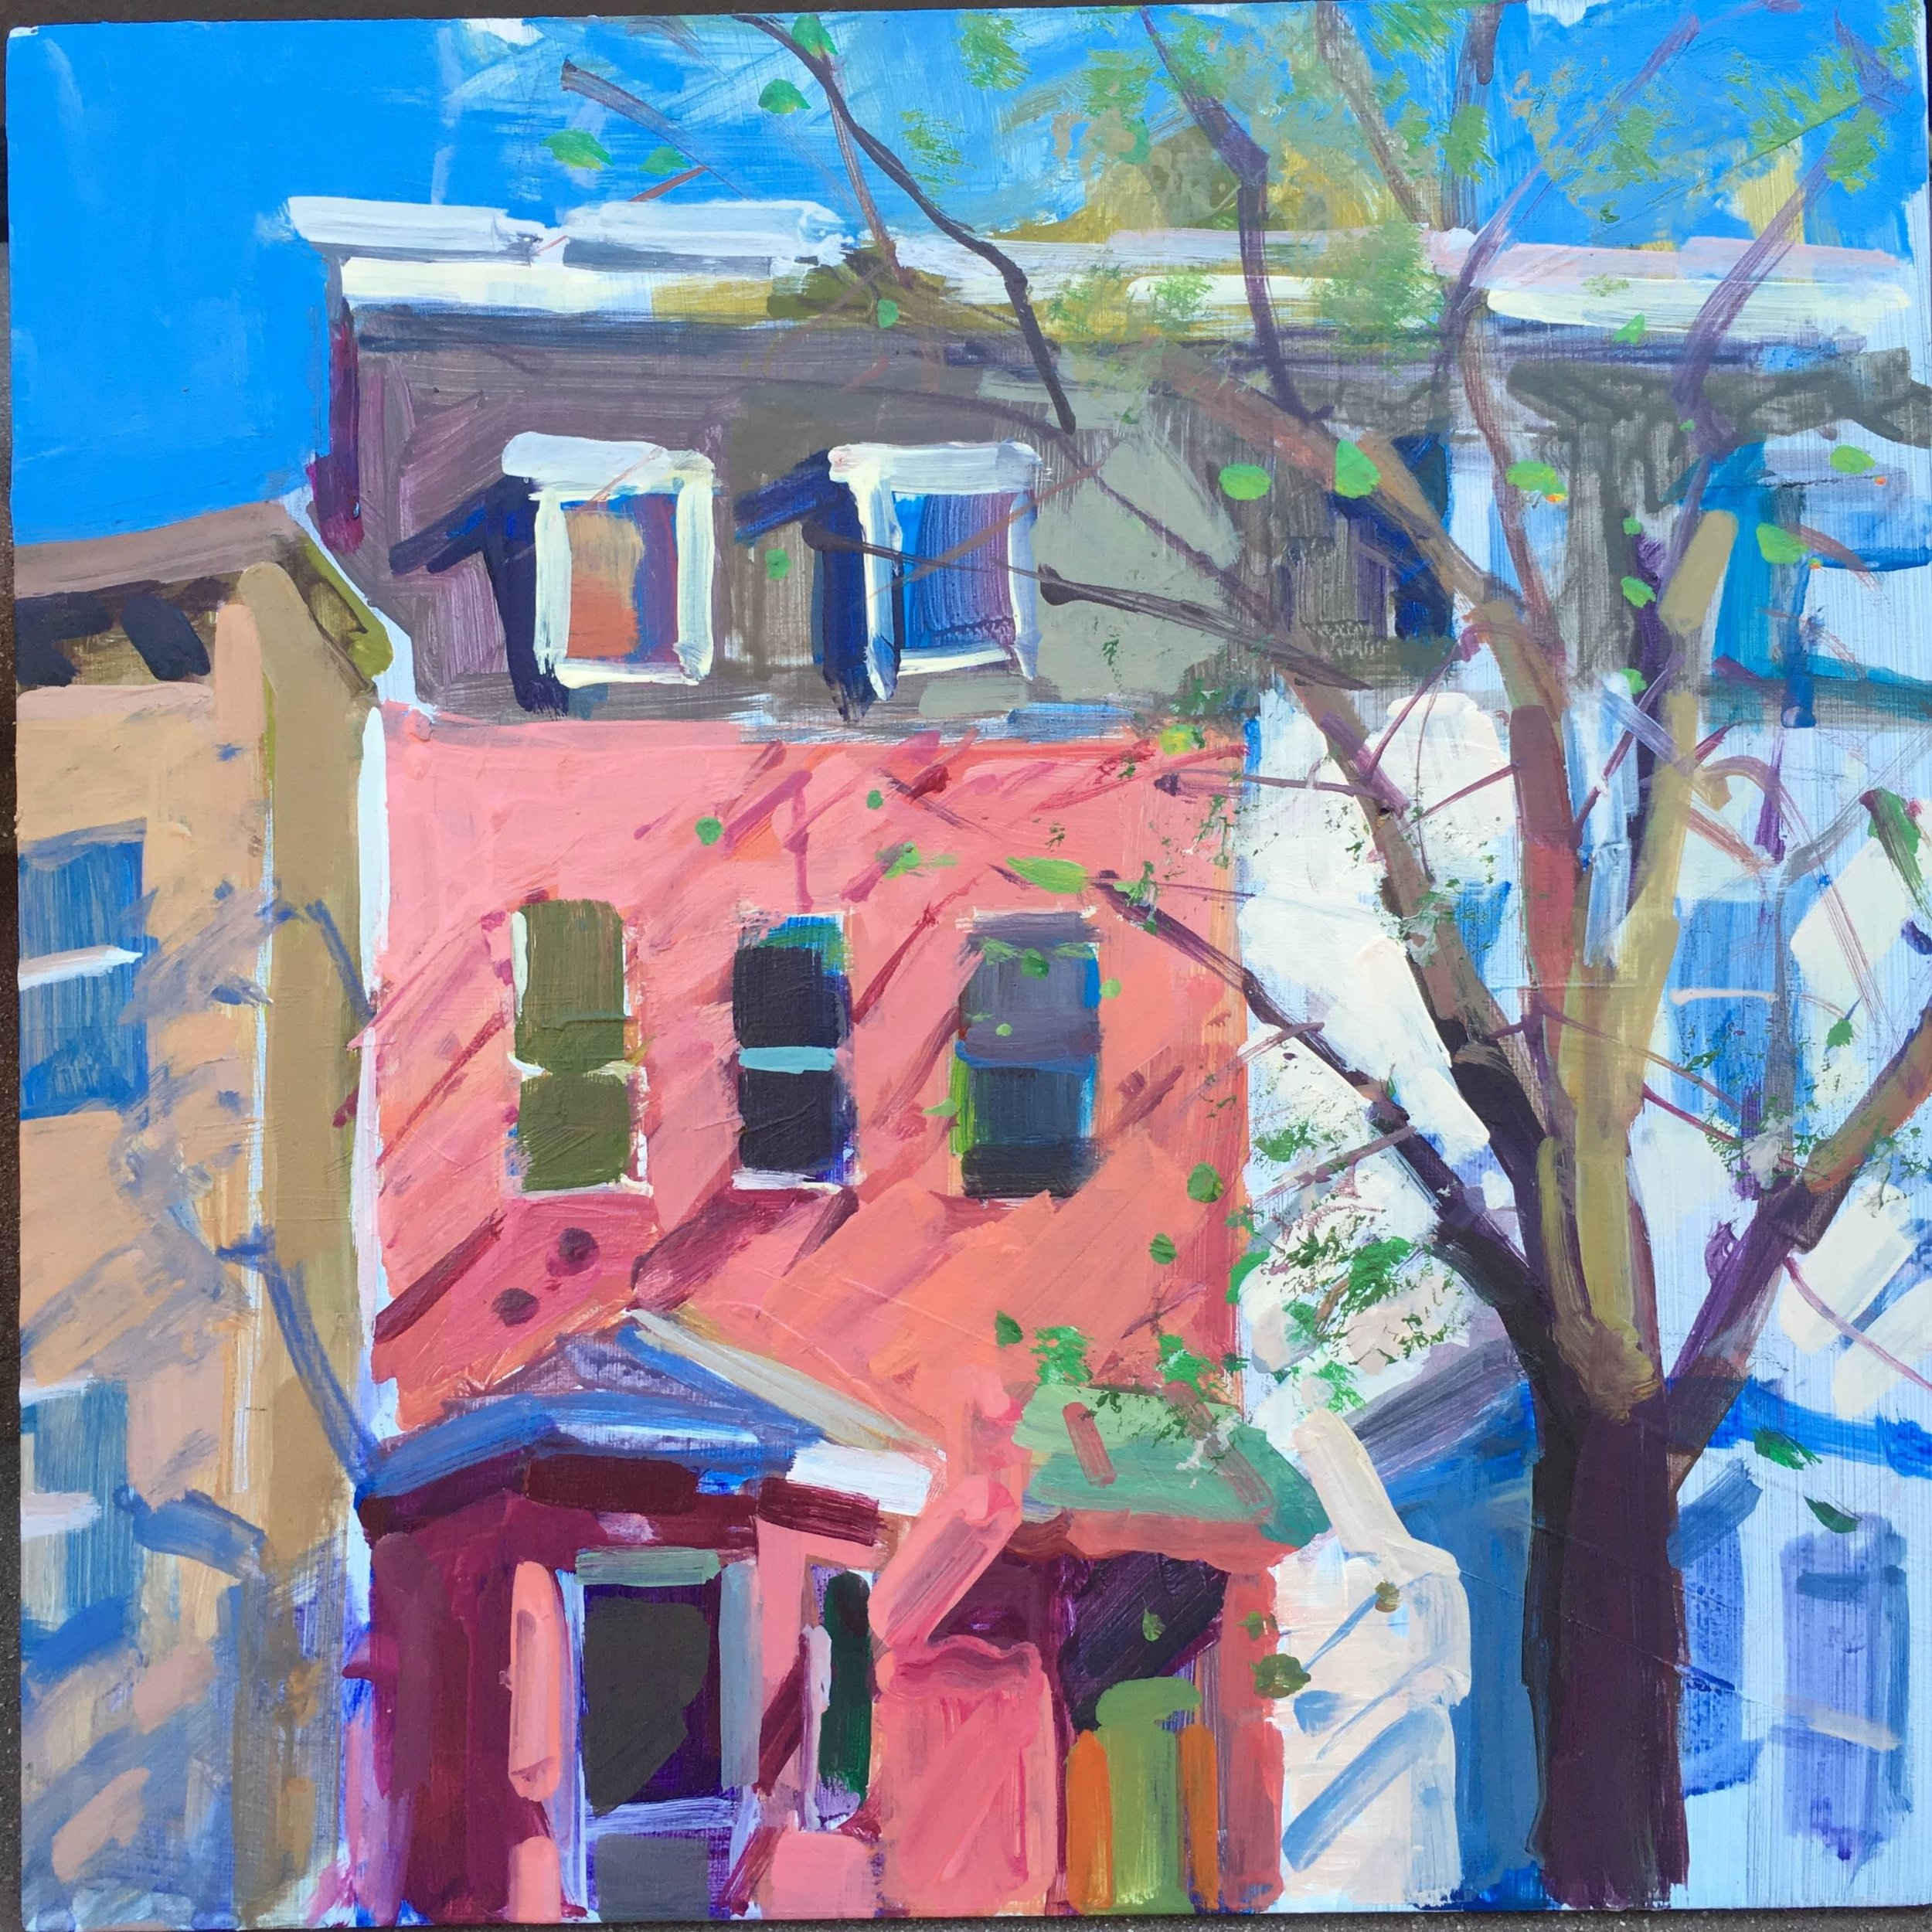 Painting Park Slope - Have really enjoyed the weather earlier this summer and have been out and about painting corners or row houses in the 'hood. Great subject matter on 6th Ave in Park Slope!